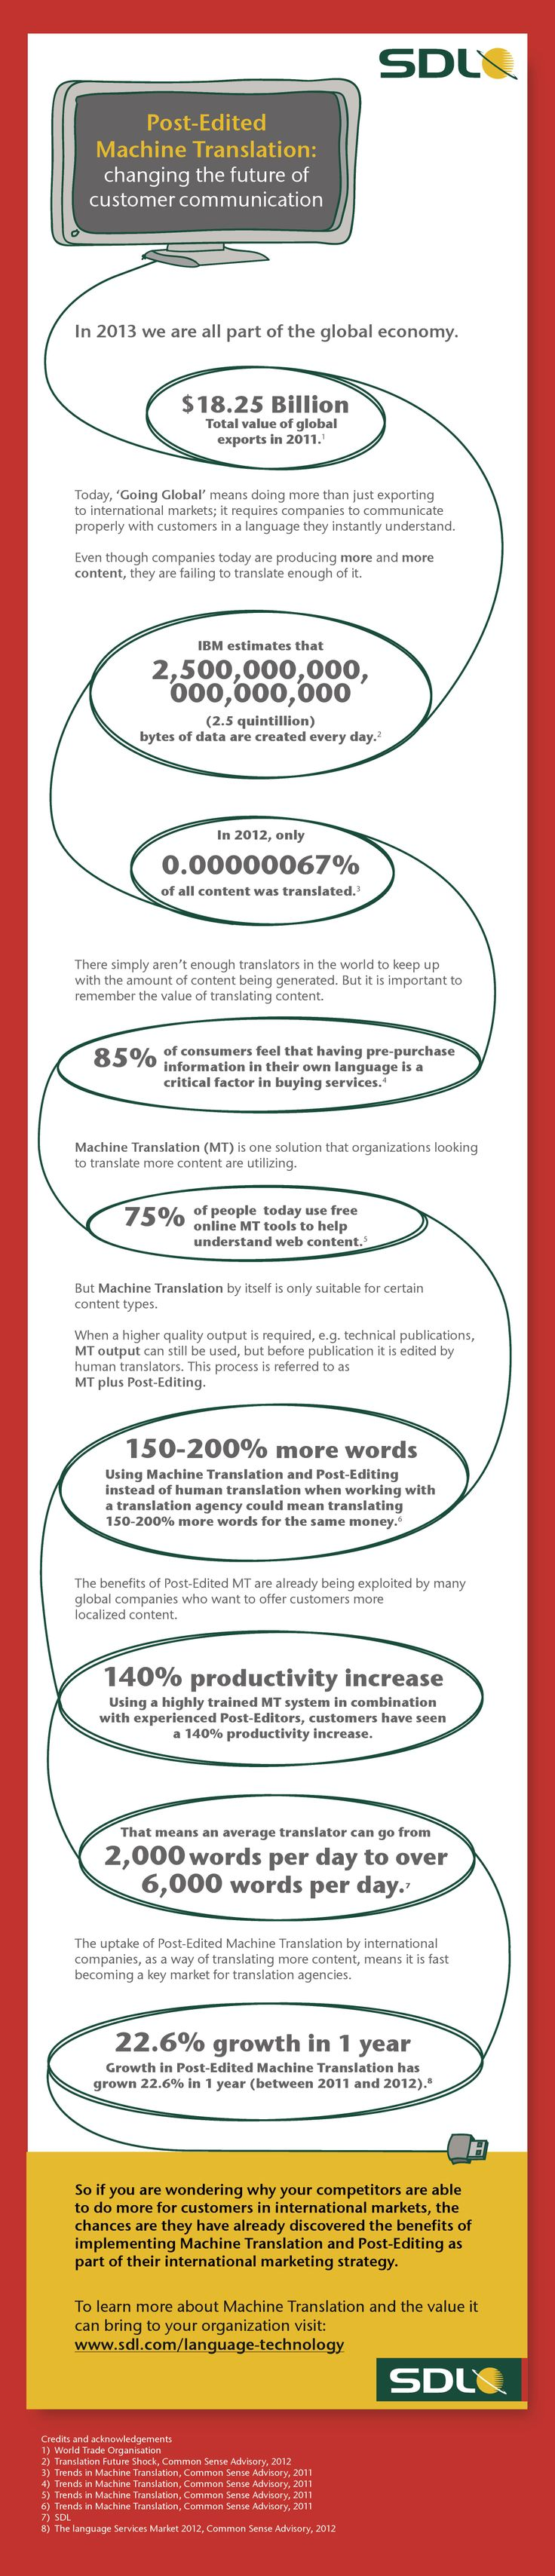 Infographic: Machine Translation and Post-Editing  All the facts and figures you need to know about Machine Translation and Post-Editing.